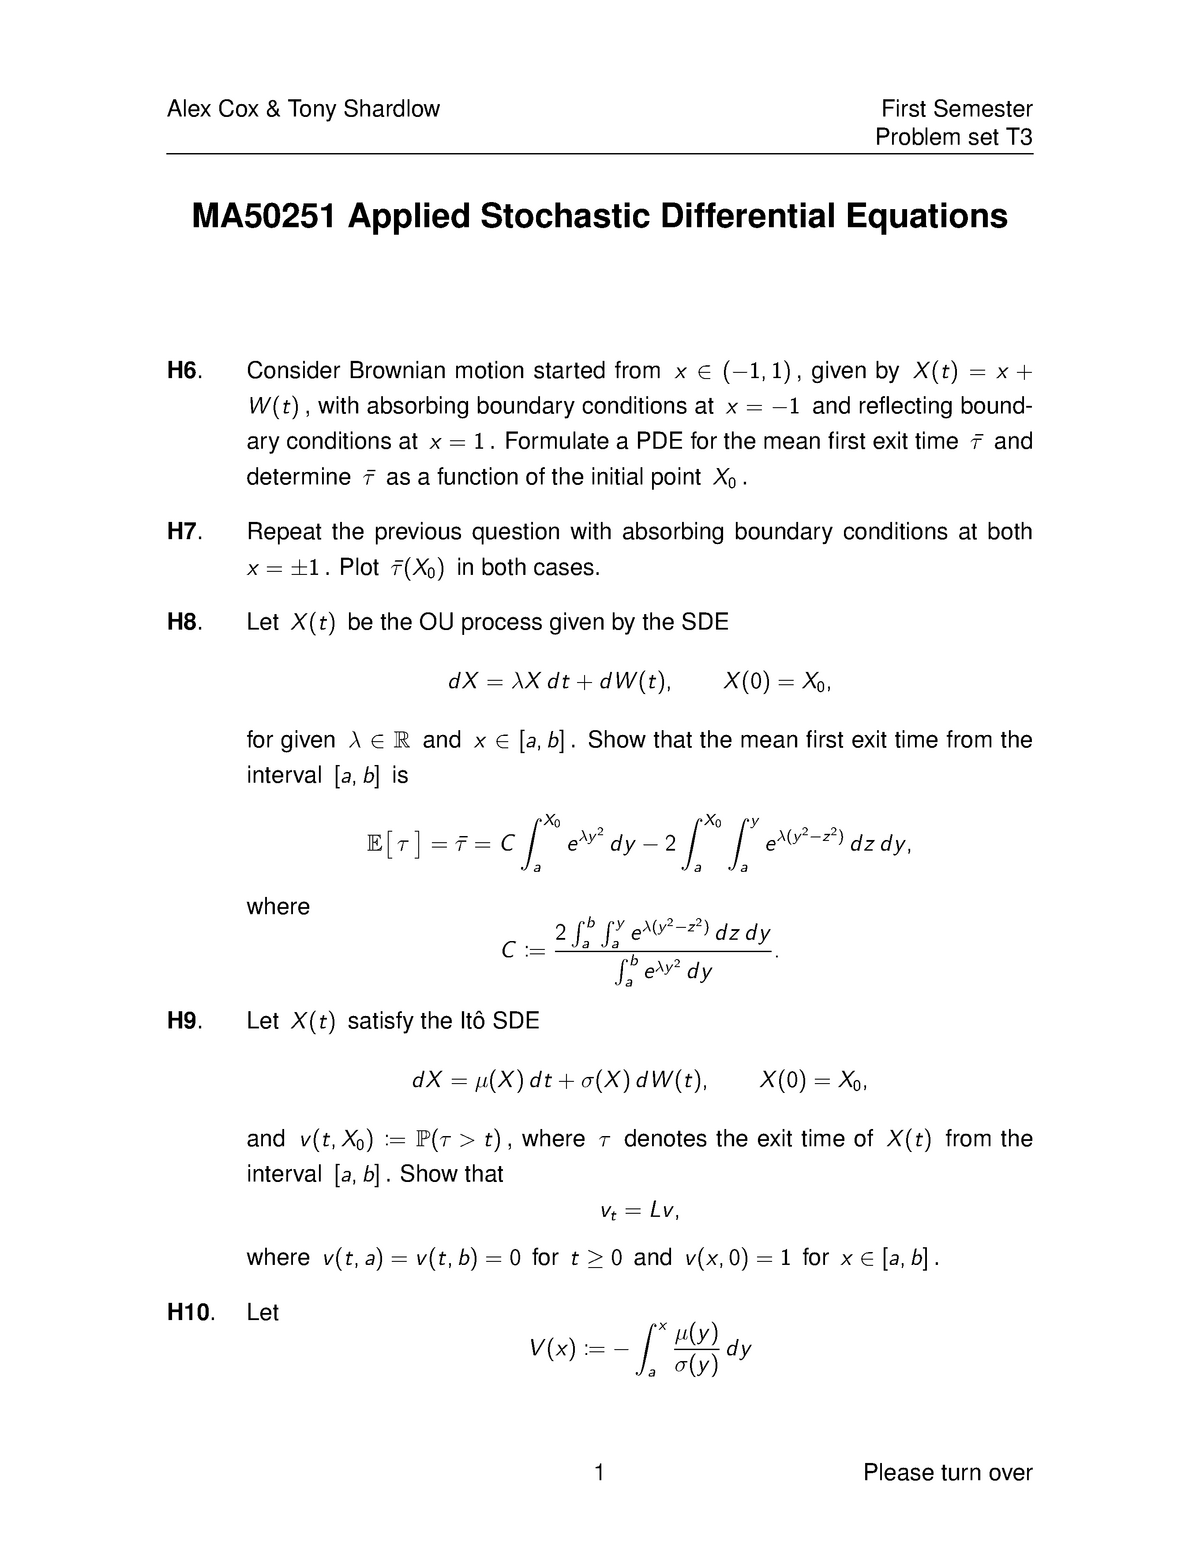 MA50251 2016-2017 Problem Sheet 7 - MA50251: Applied